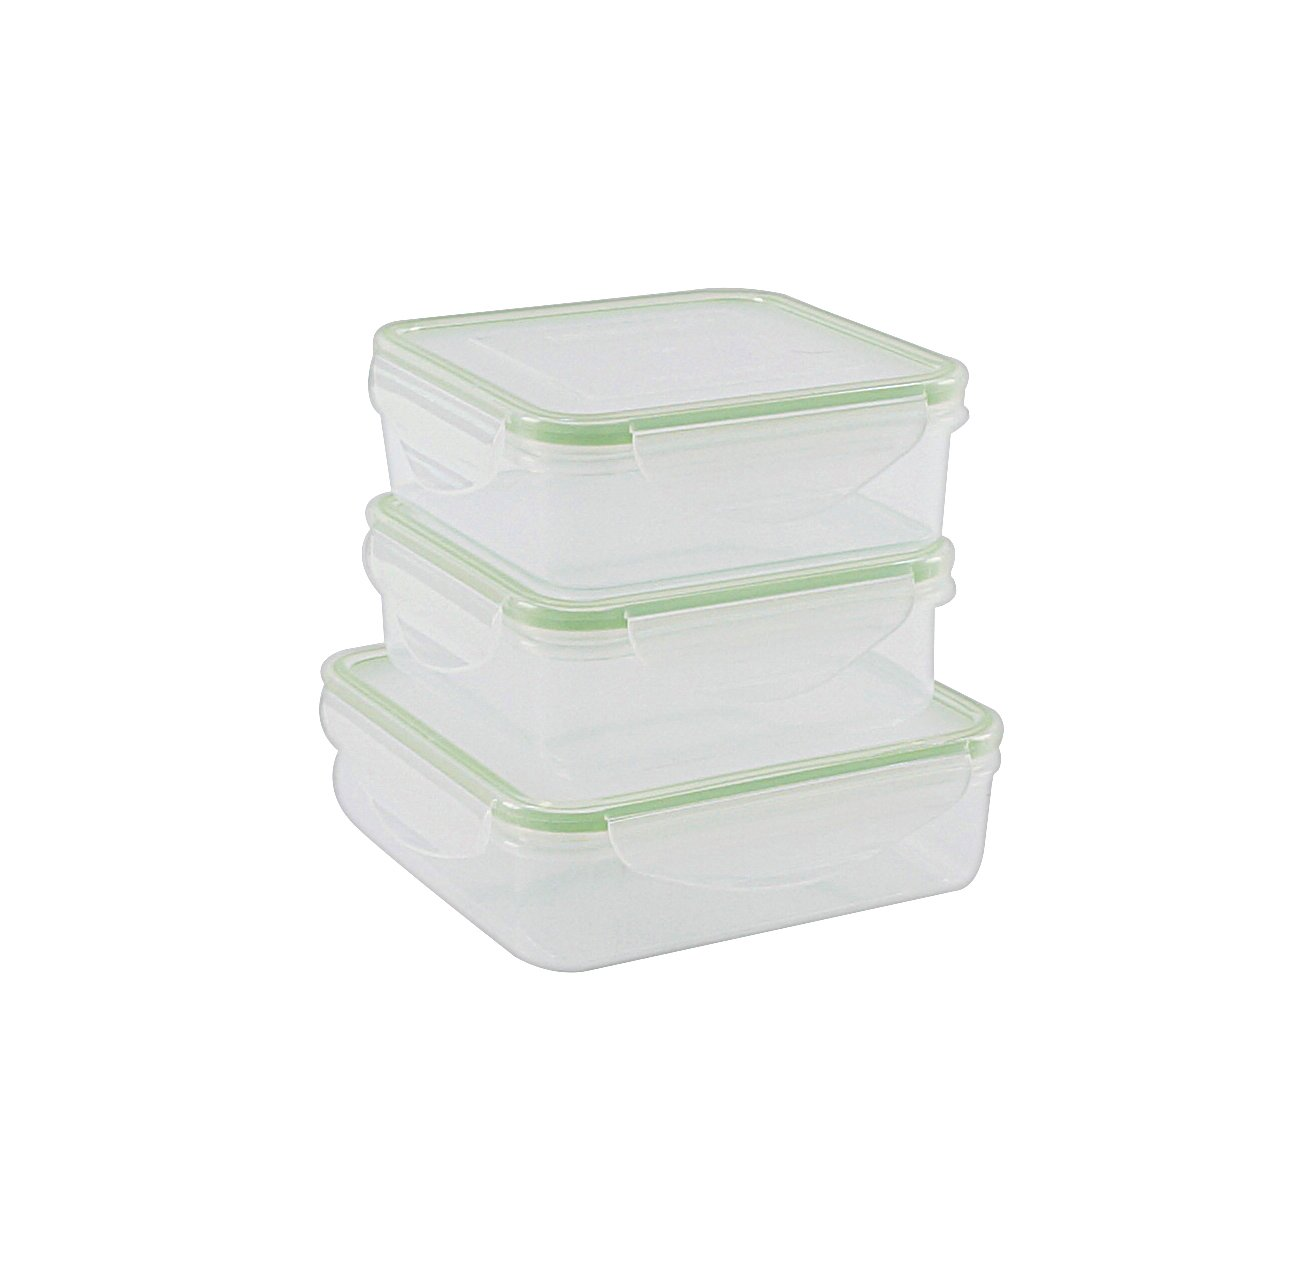 Kinetic GoGreen Fresh Food Storage Container Set with lids, 6-Piece